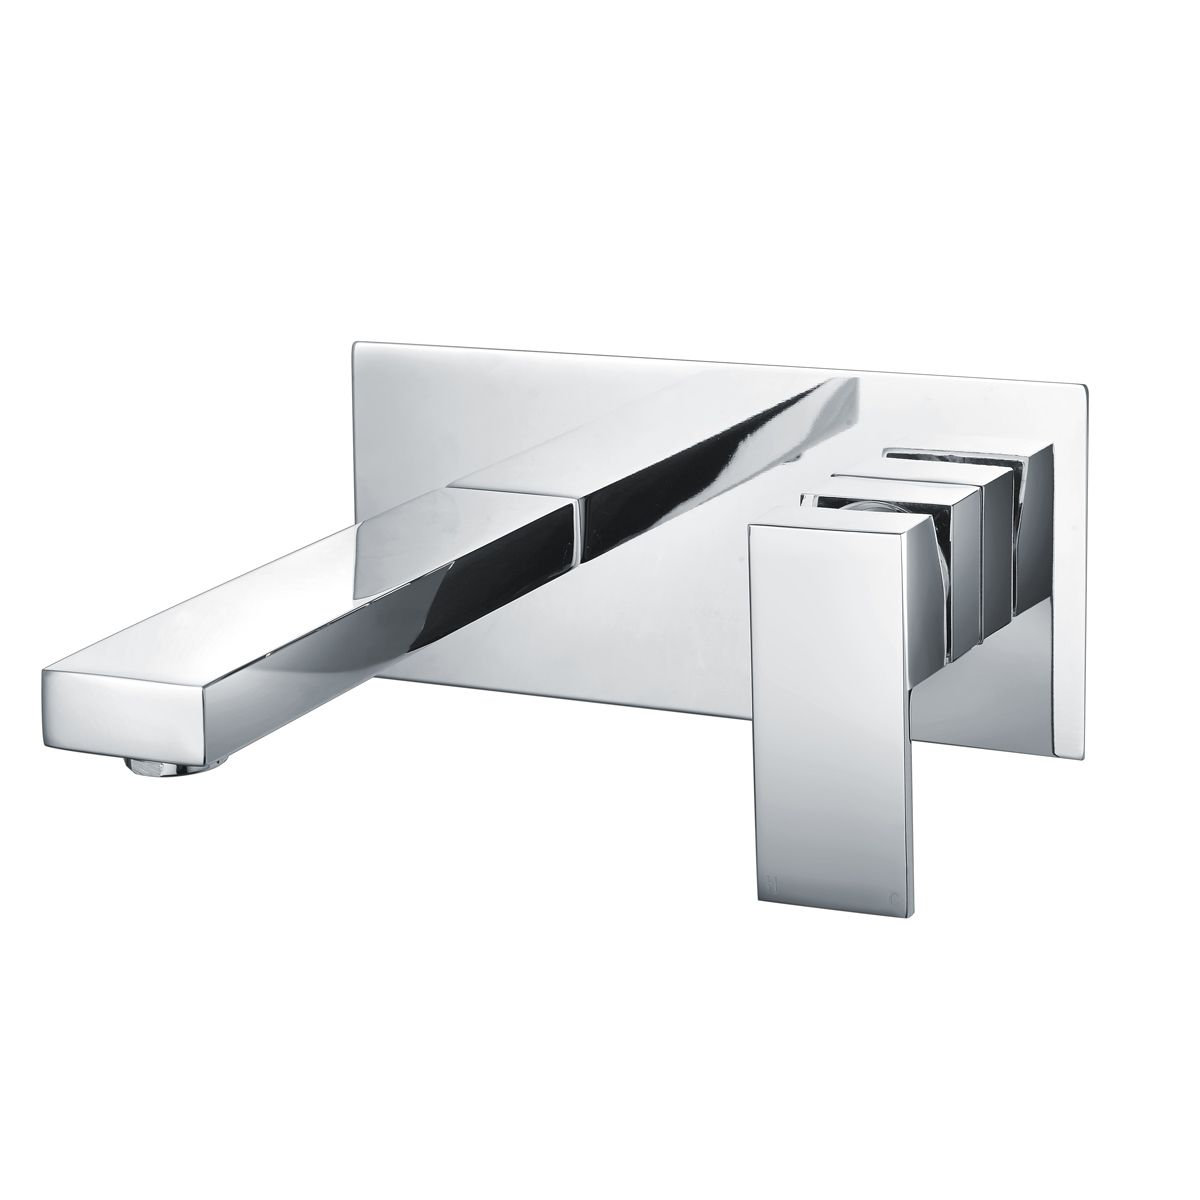 RAK Cubis Wall Mounted Basin Mixer Tap with Backplate